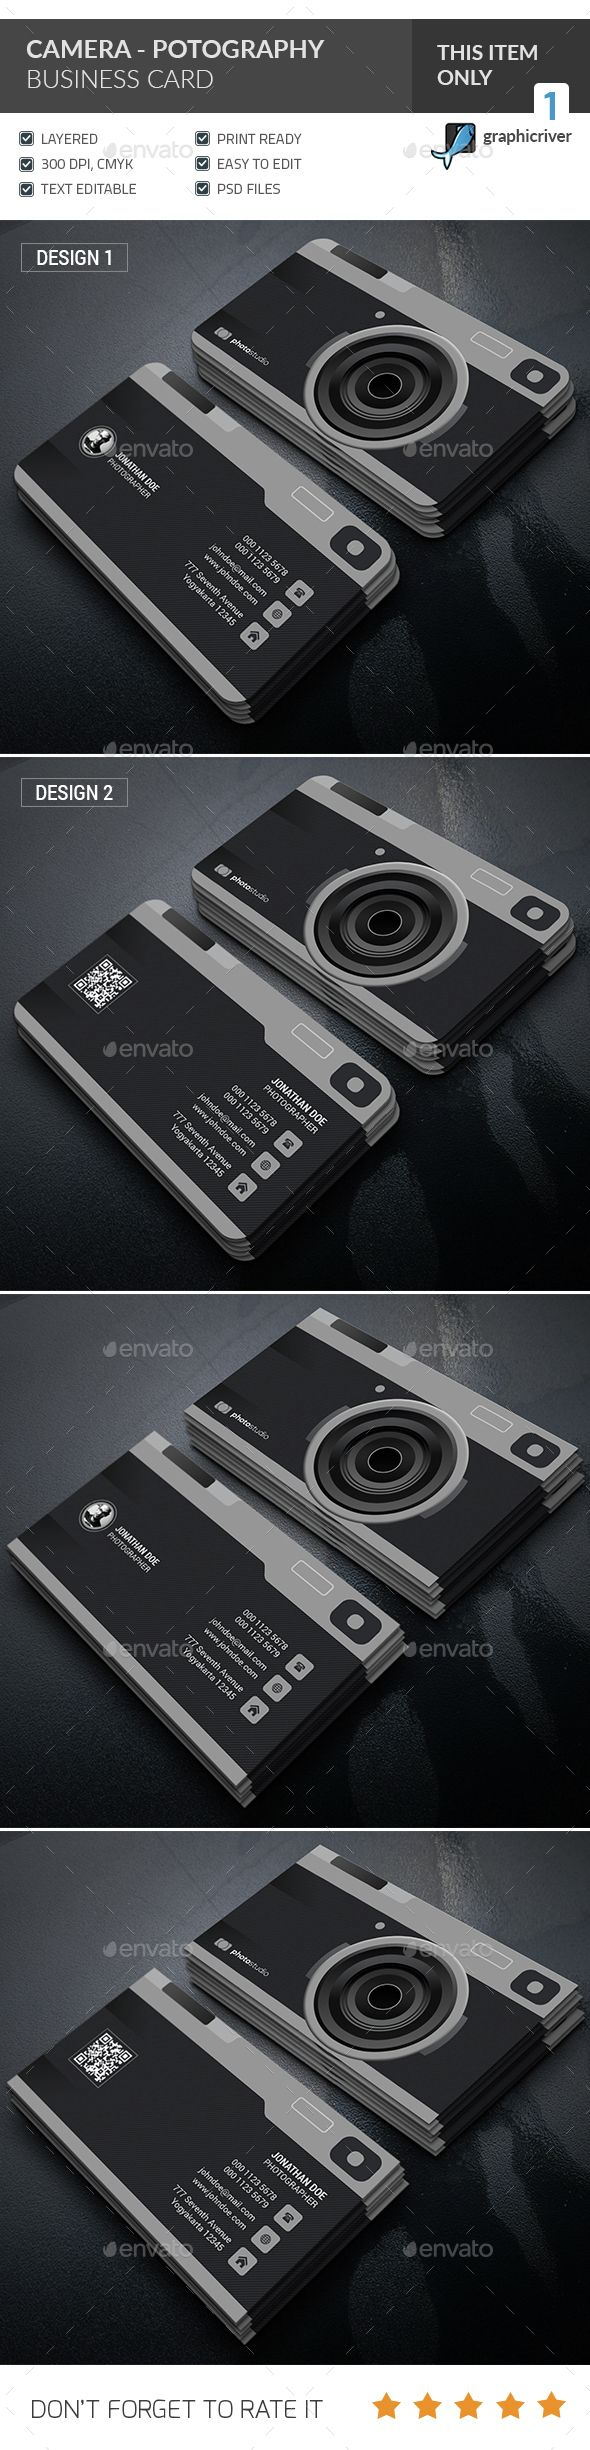 Camera - Photography Business Card — PSD Template More